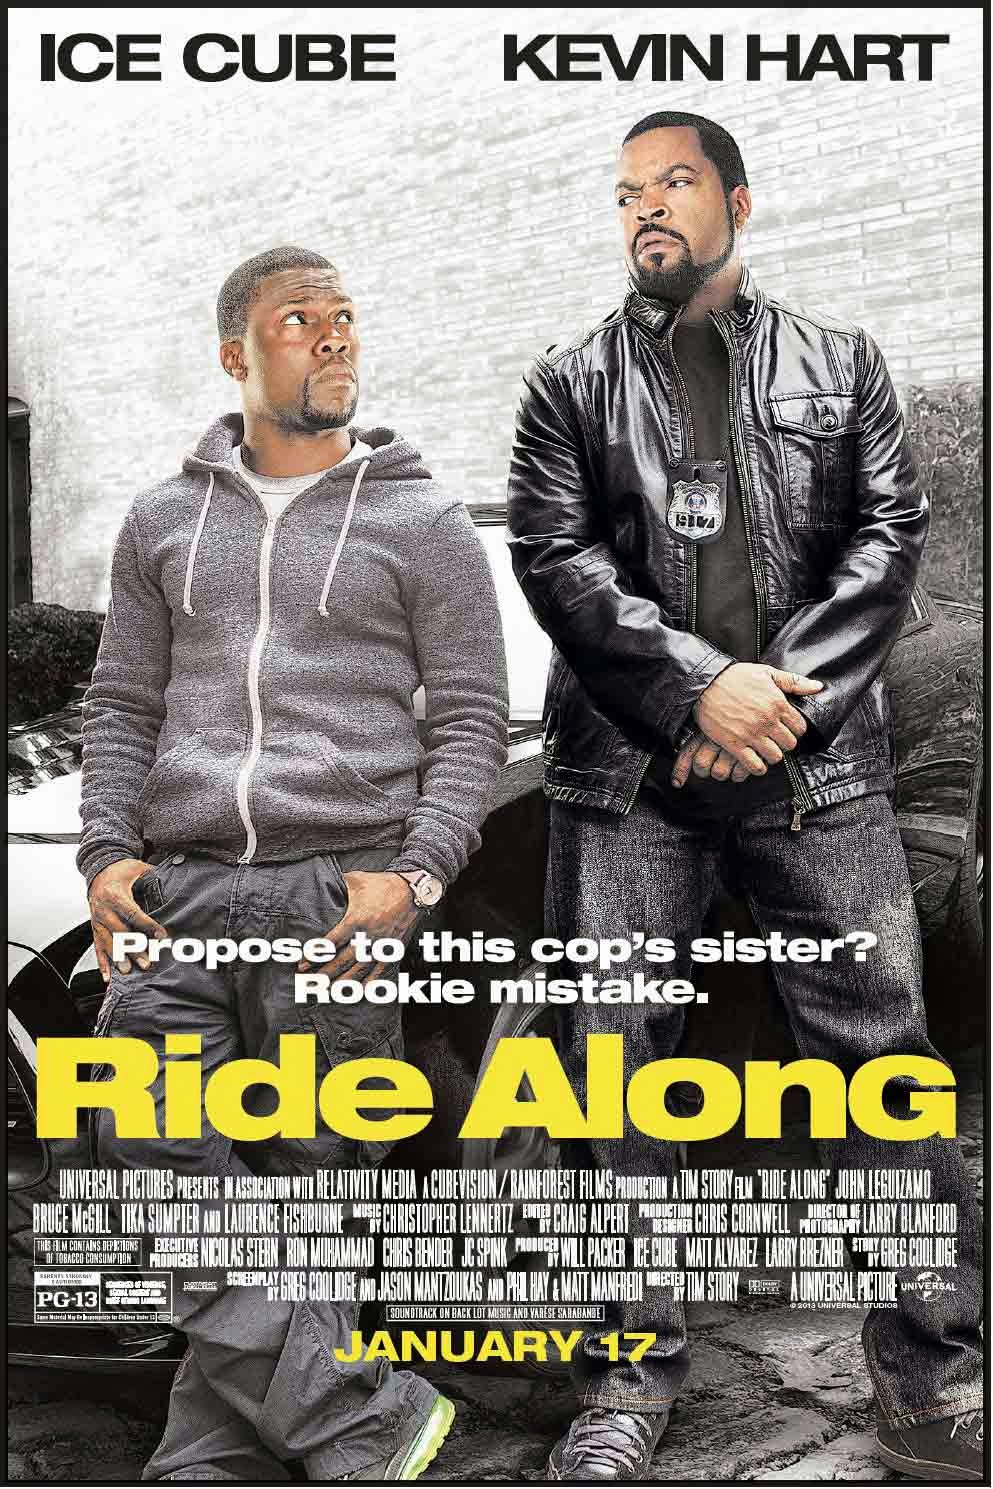 TODAY I WATCHED (Movies, TV series) 2014 - Page 37 Ride-Along-movie-poster-Kevin-Hart-Ice-Cube